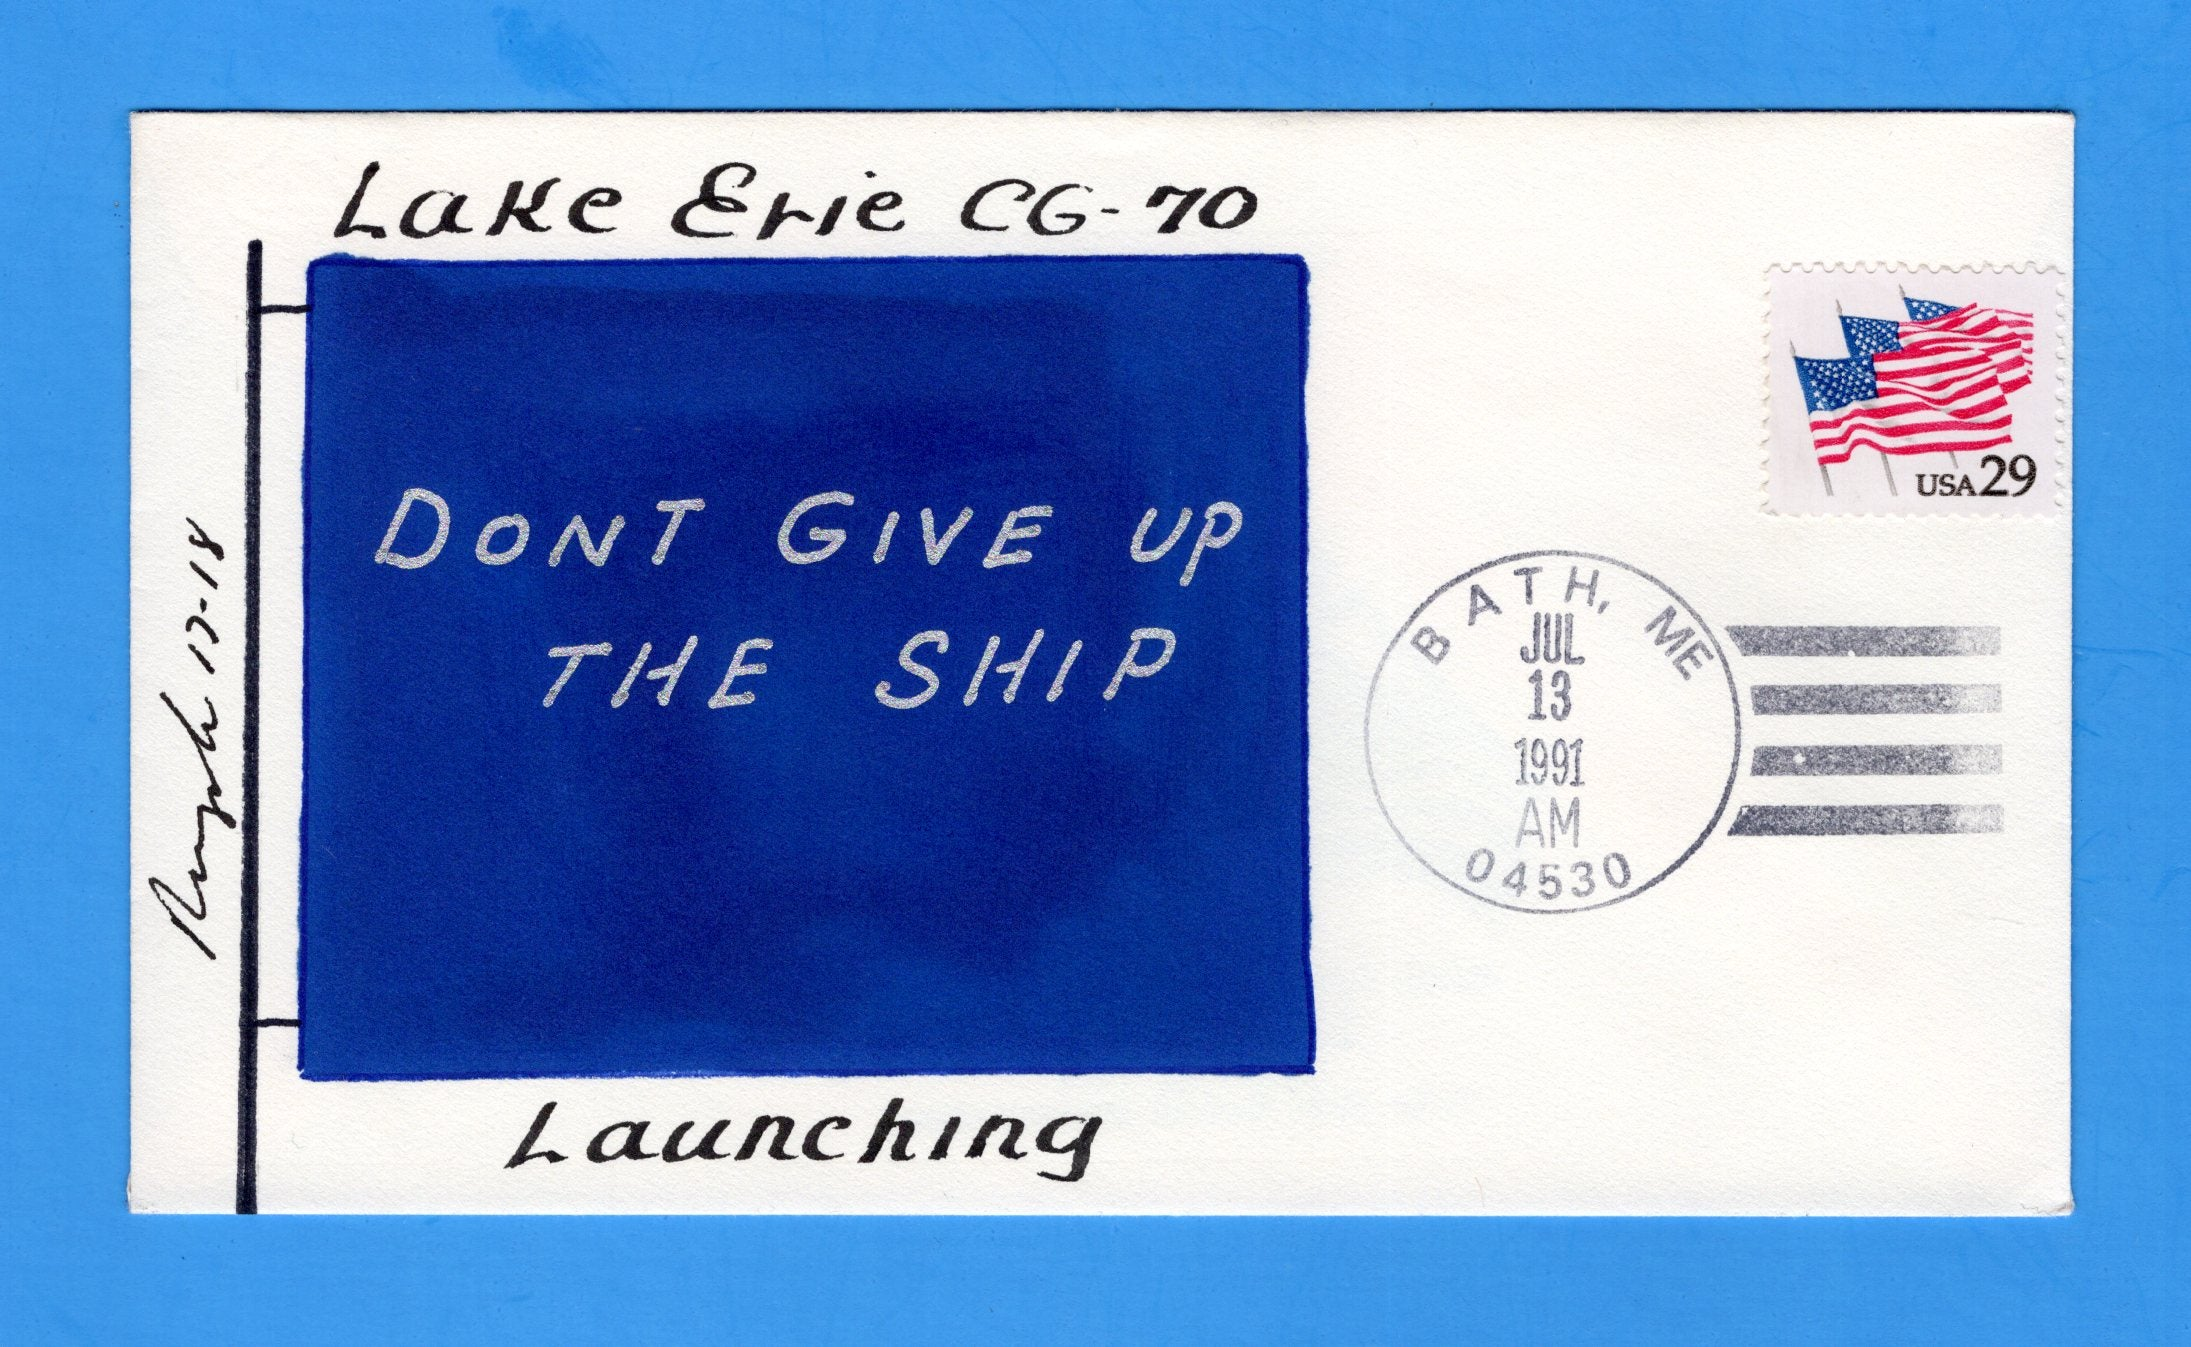 USS Lake Erie CG-70 Launched July 13, 1991 - Rogak Cachet